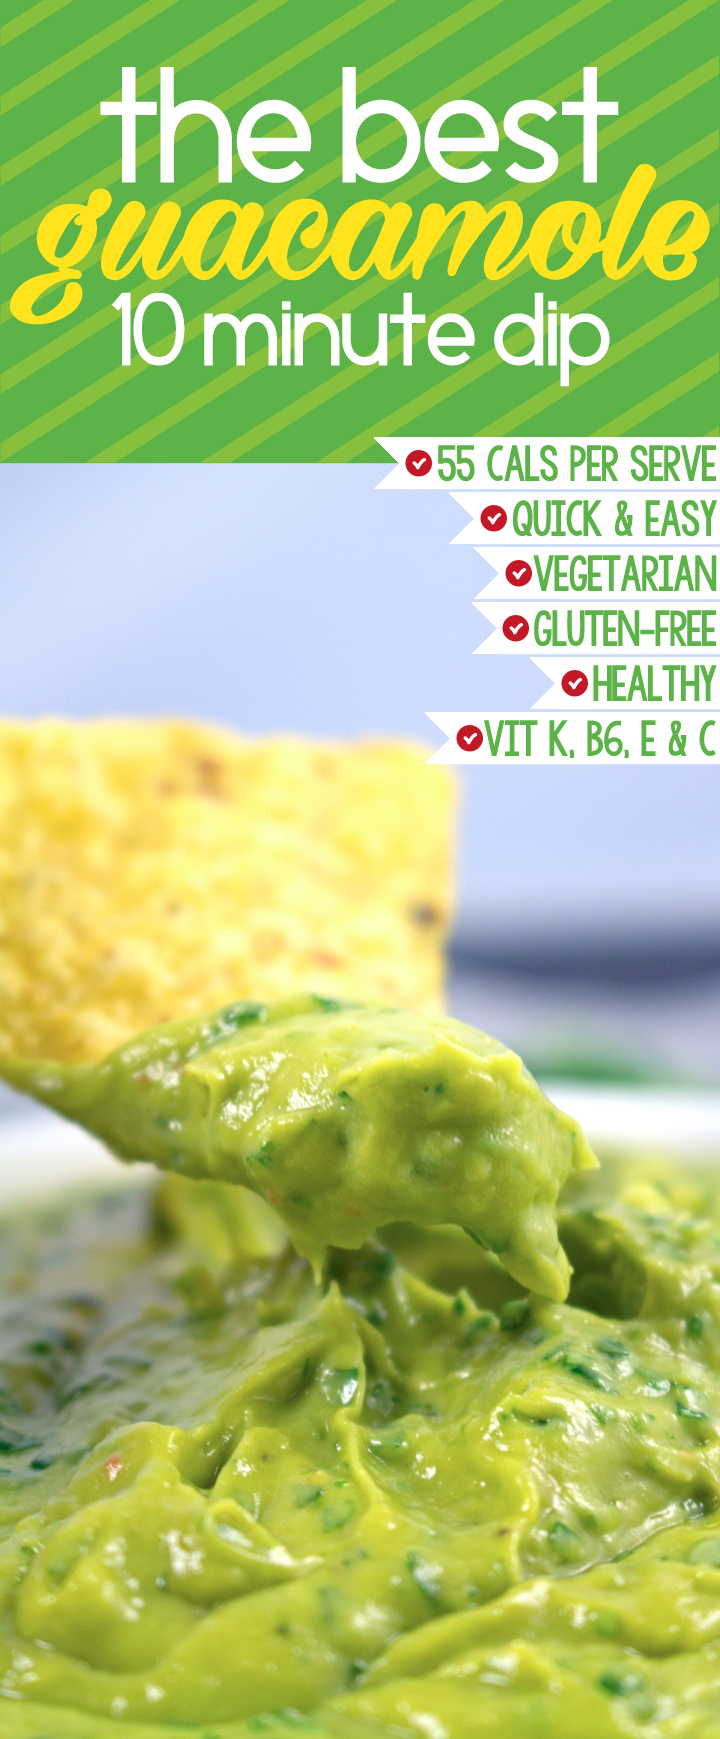 Best Guacamole Recipe - This is by far the BEST guacamole dip I've made, super easy and healthy (takes only 10mins) OMG SO GOOD!!